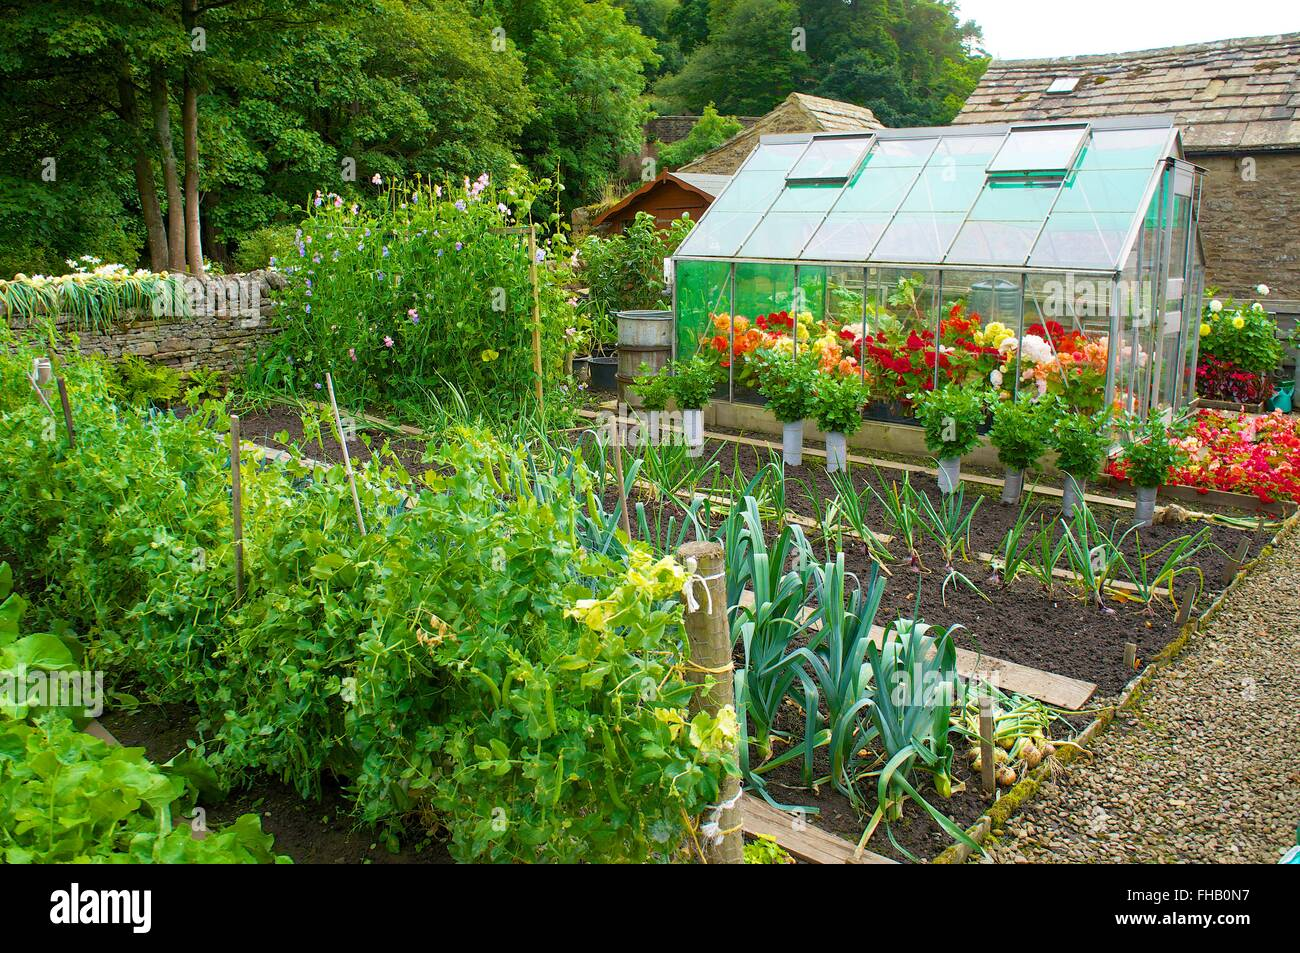 Allotment growing vegetables and flowers in the green house. - Stock Image